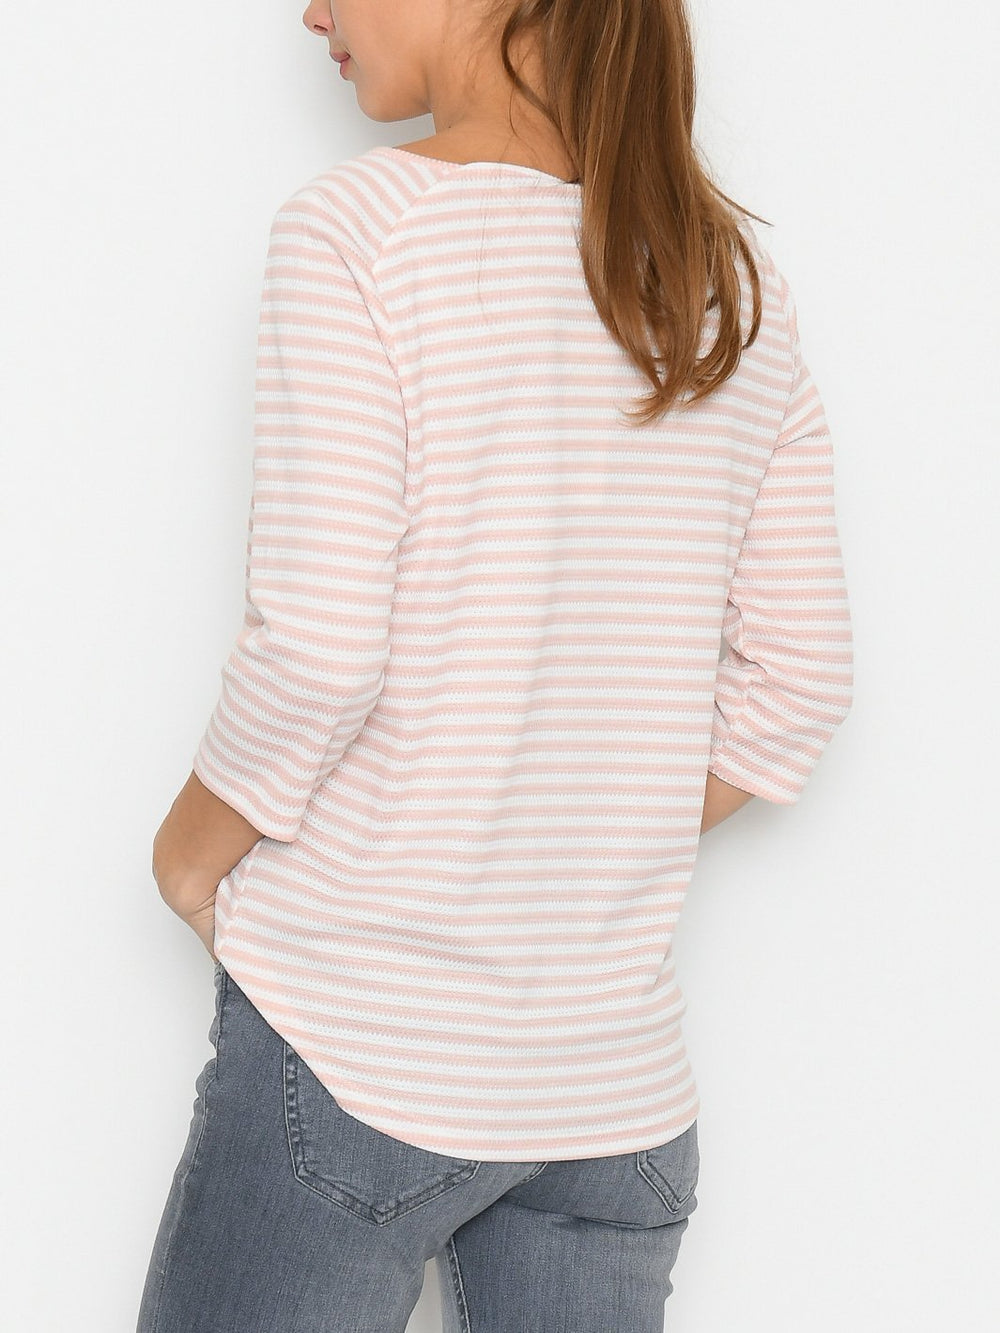 Fransa FRpejacq 1 t-shirt misty rose mix - Online-Mode